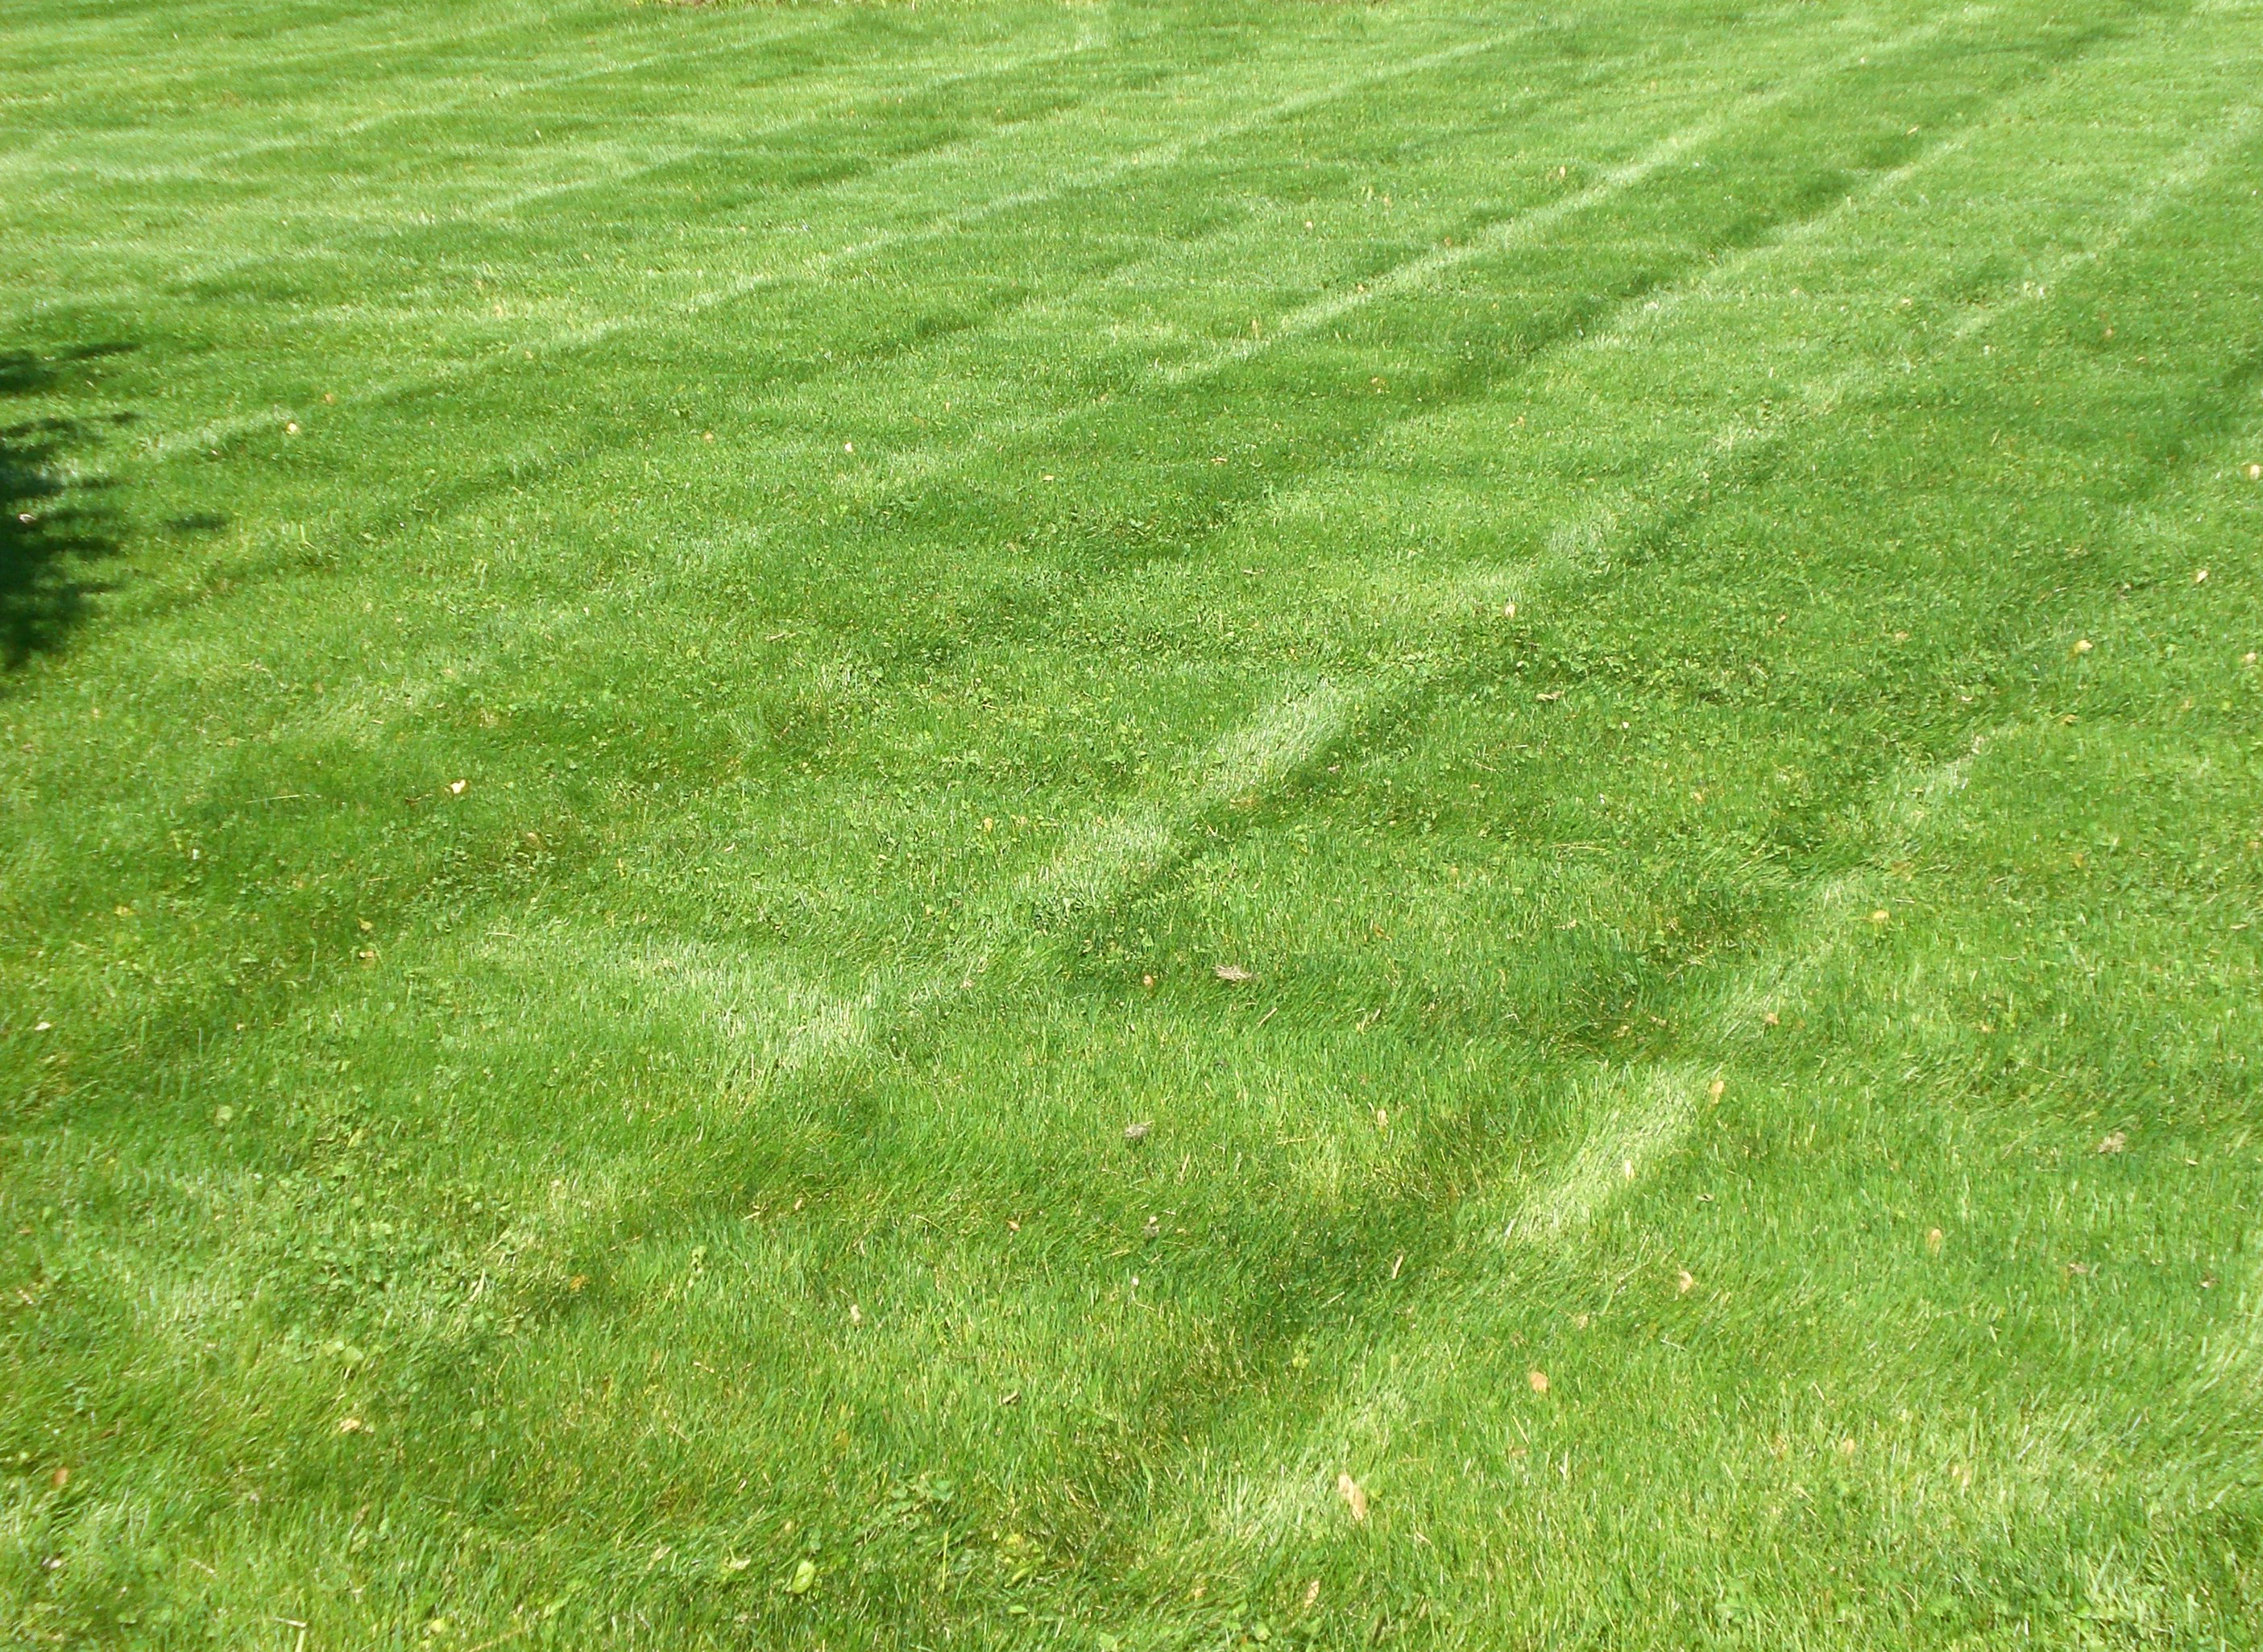 File:StripedLawn.jpg